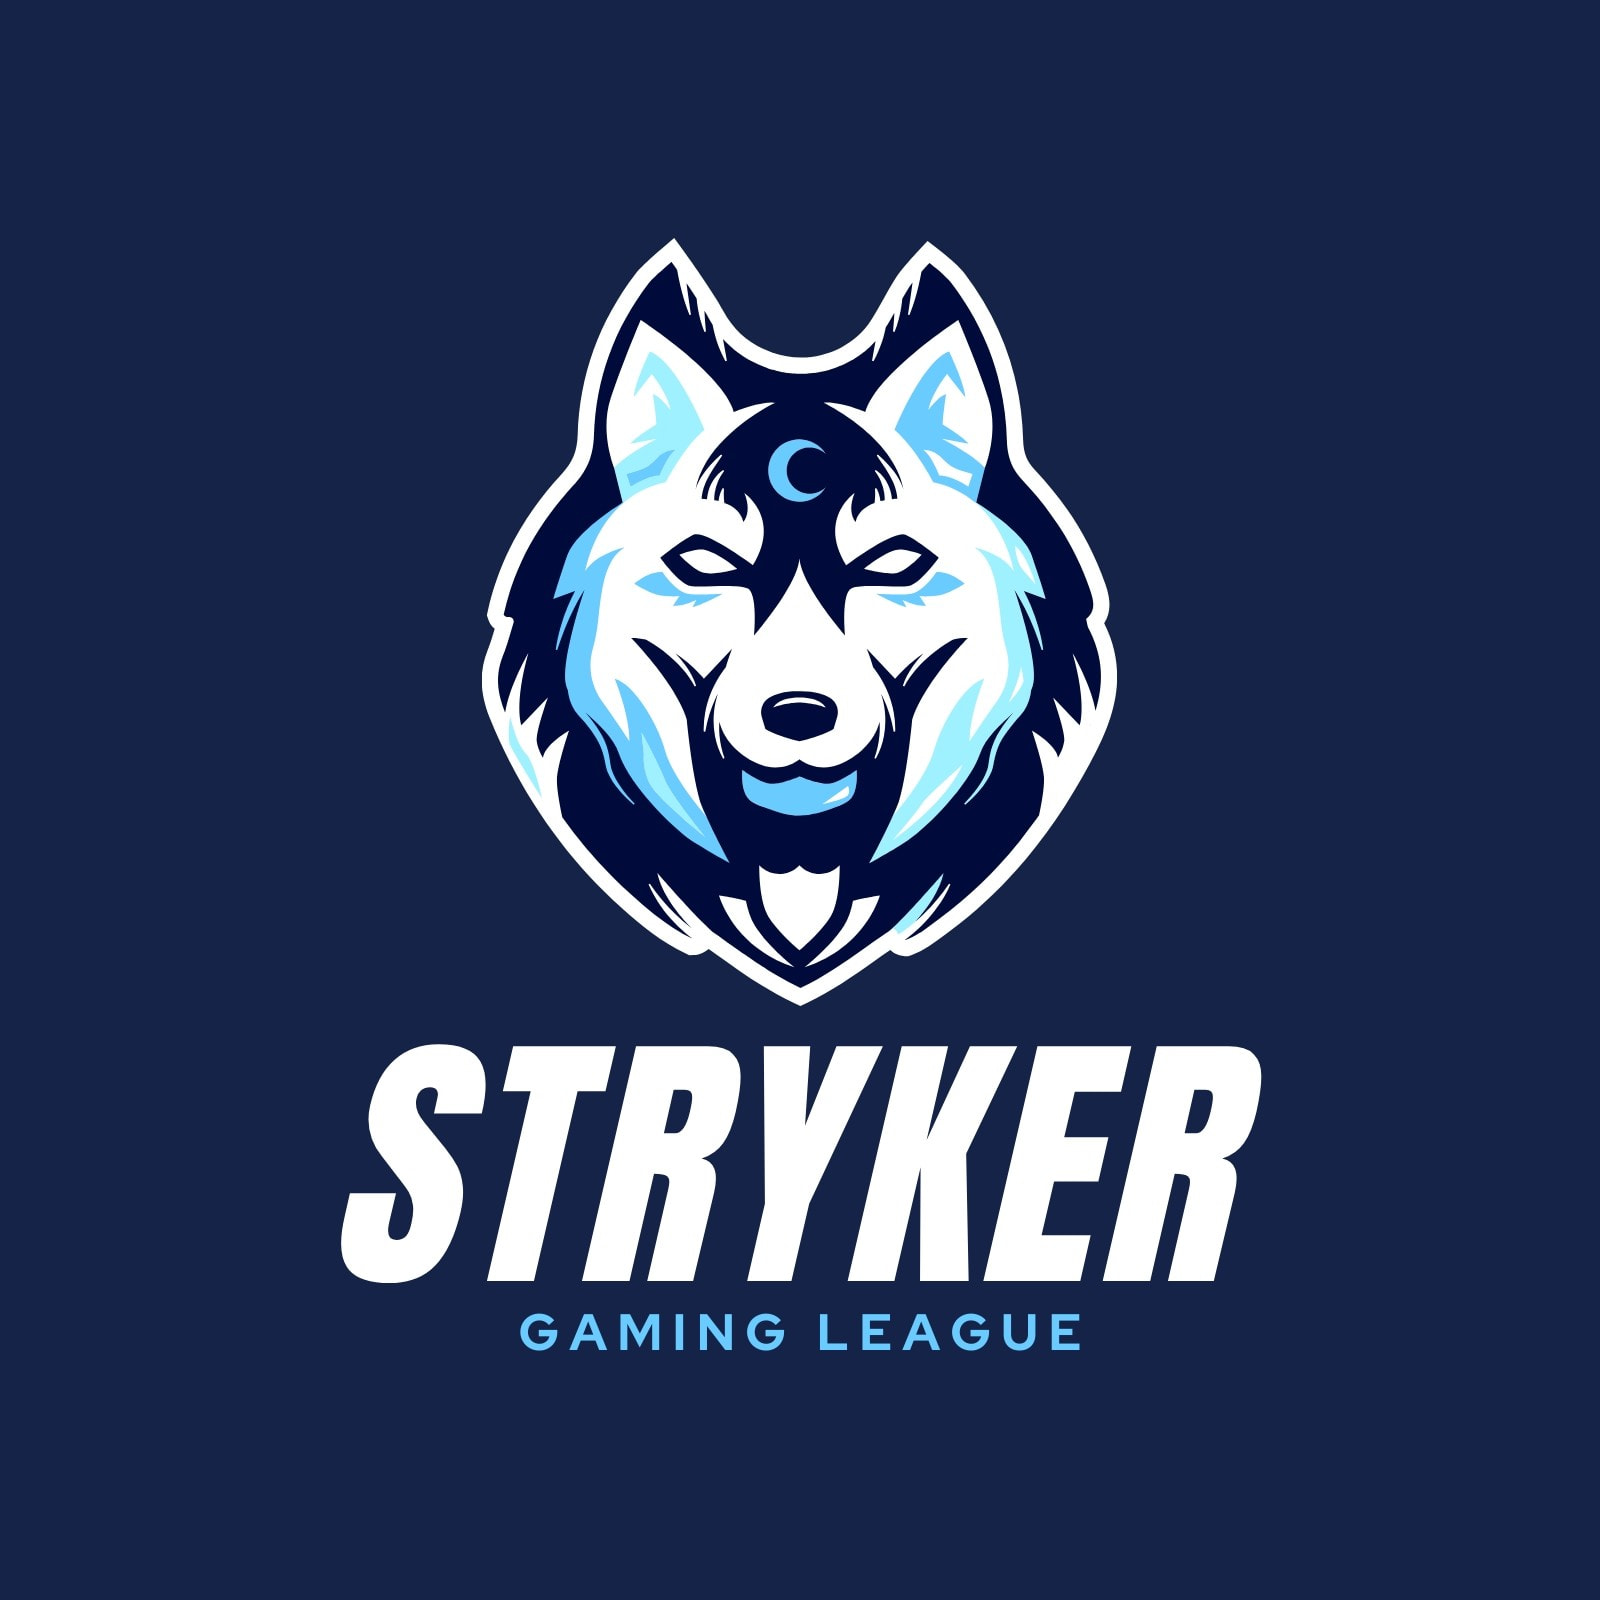 Blue and White Gaming Logo